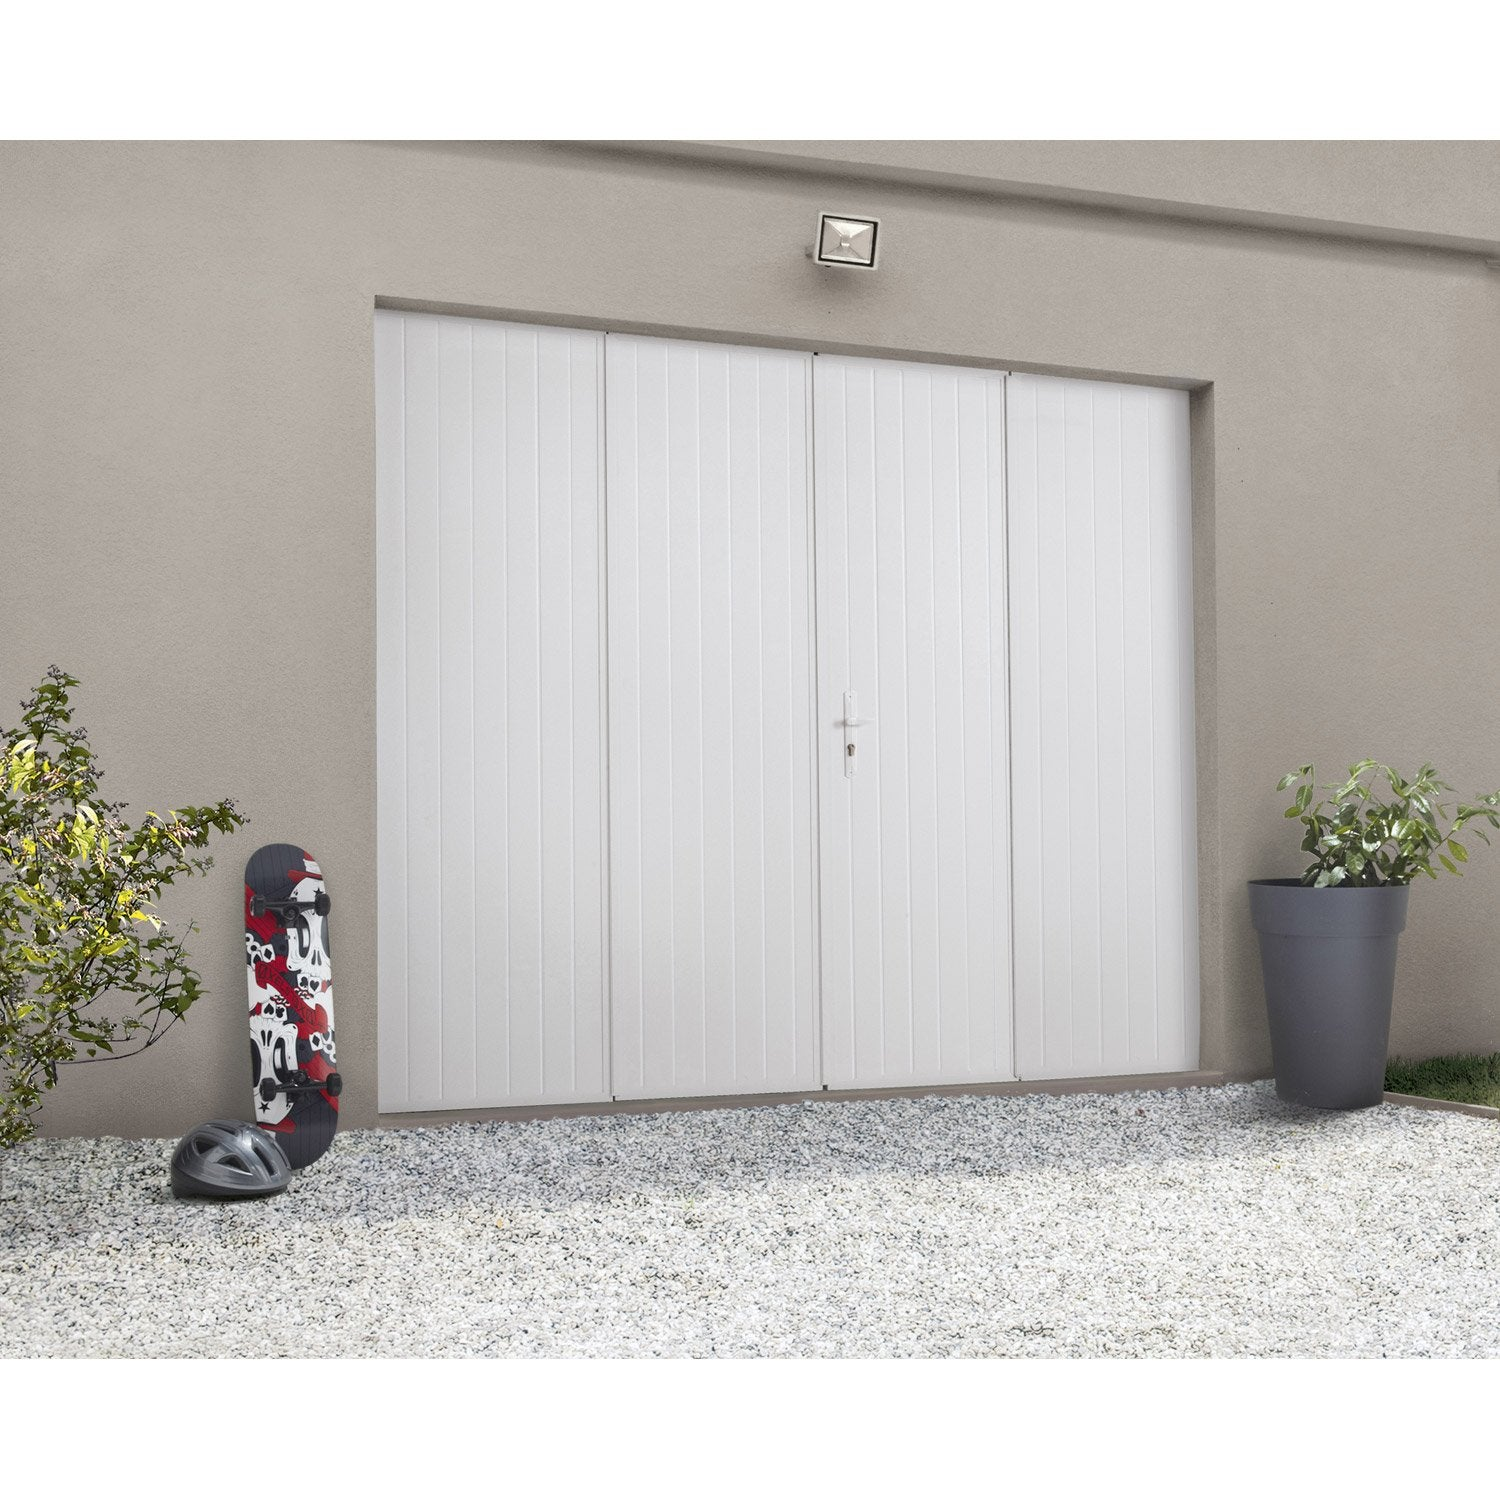 Porte de garage pliante manuelle artens essentiel 200 x for Hublot porte garage sectionnelle